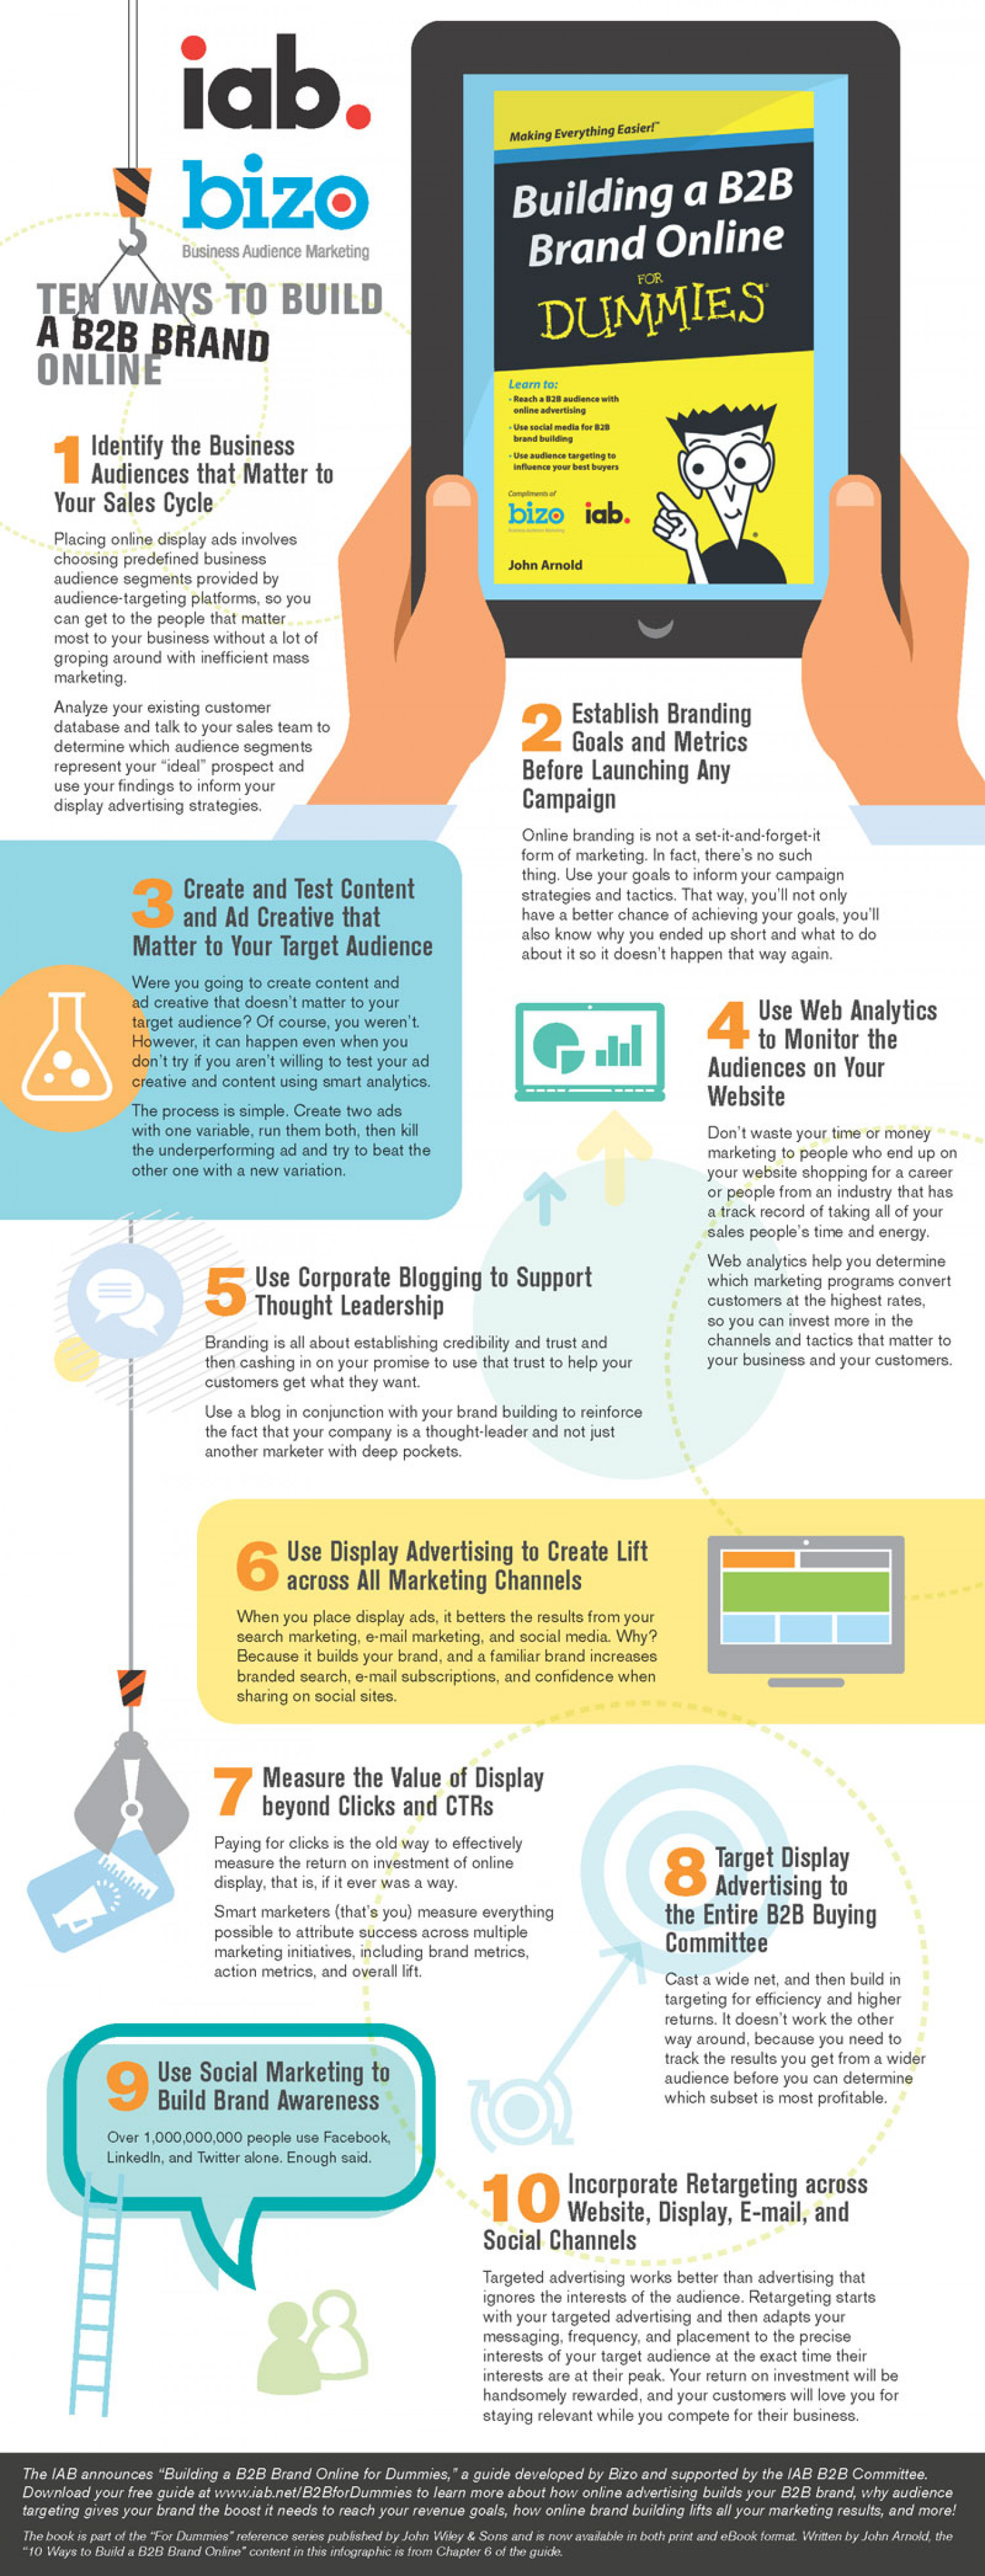 17 Ideas on Building Effective Brand Online  Infographic